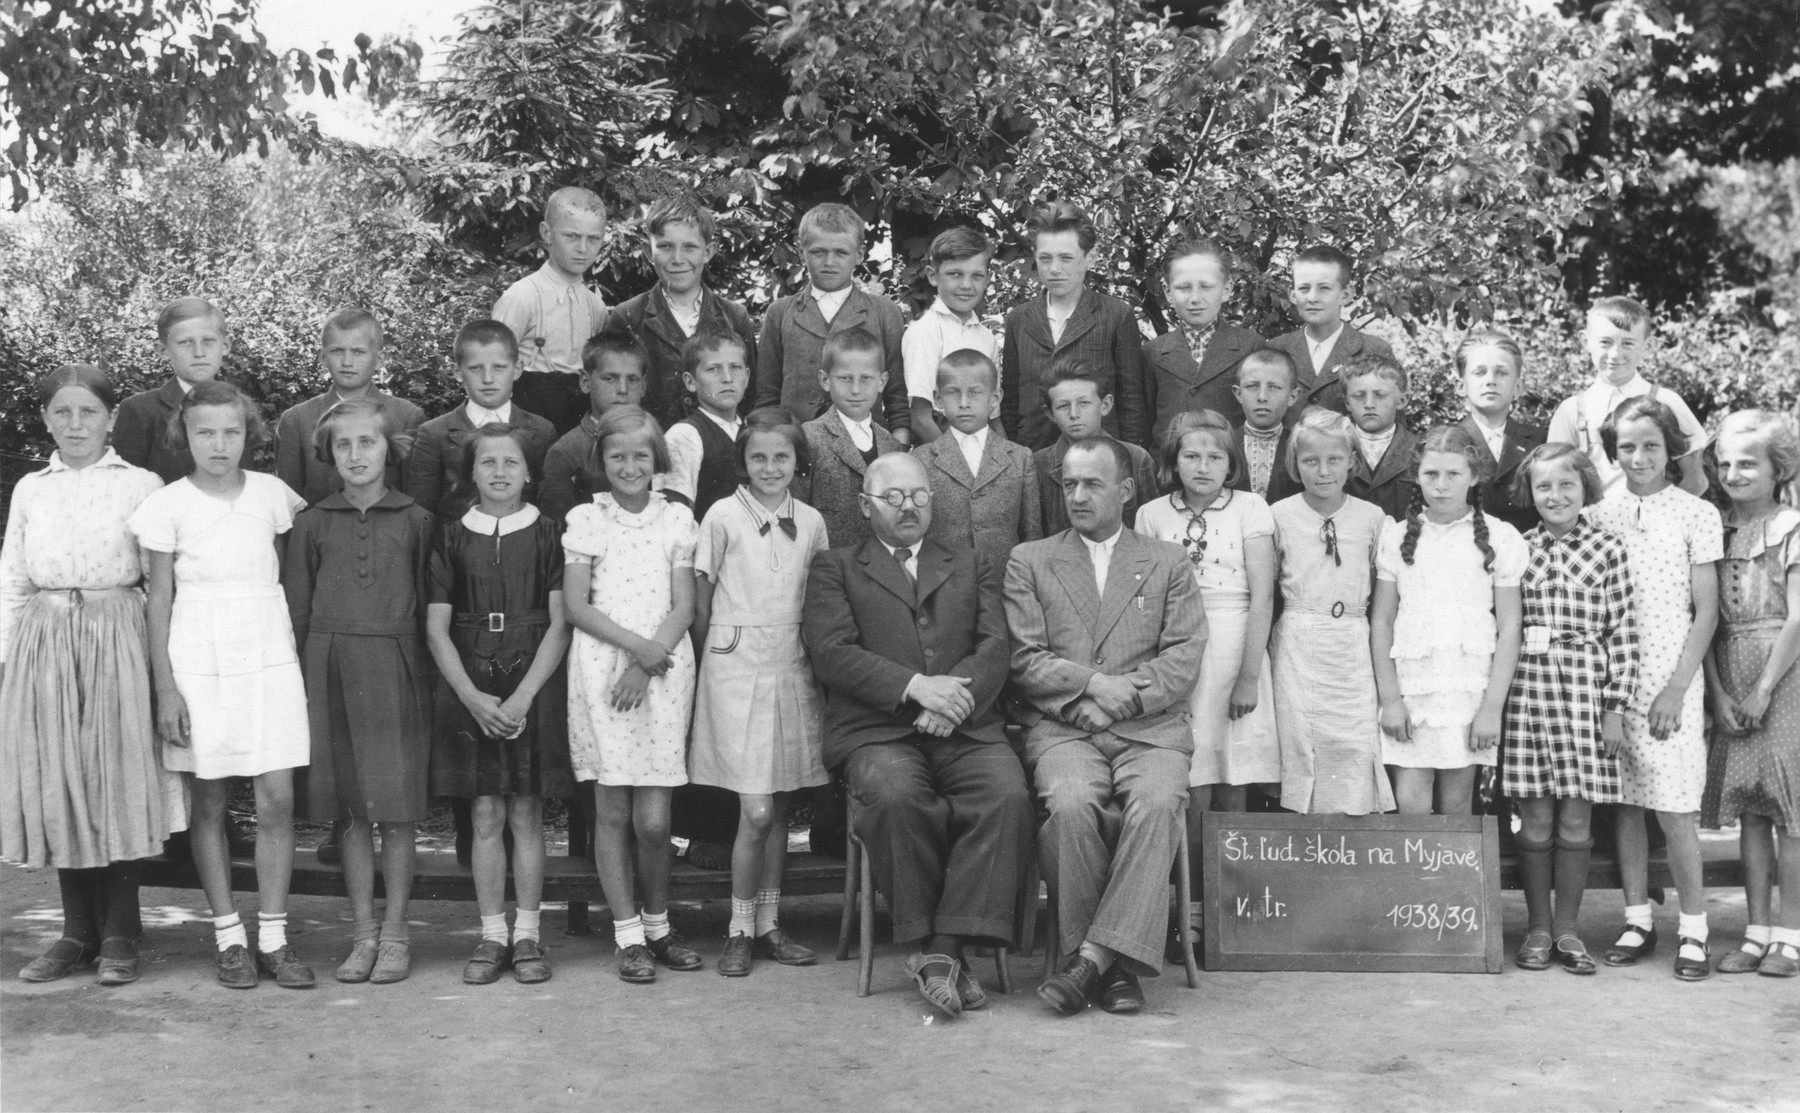 Group portrait of the fifth grade class at the Myjava public school.  Among those pictured is Magdalena Beck (front row, fourth from the right).